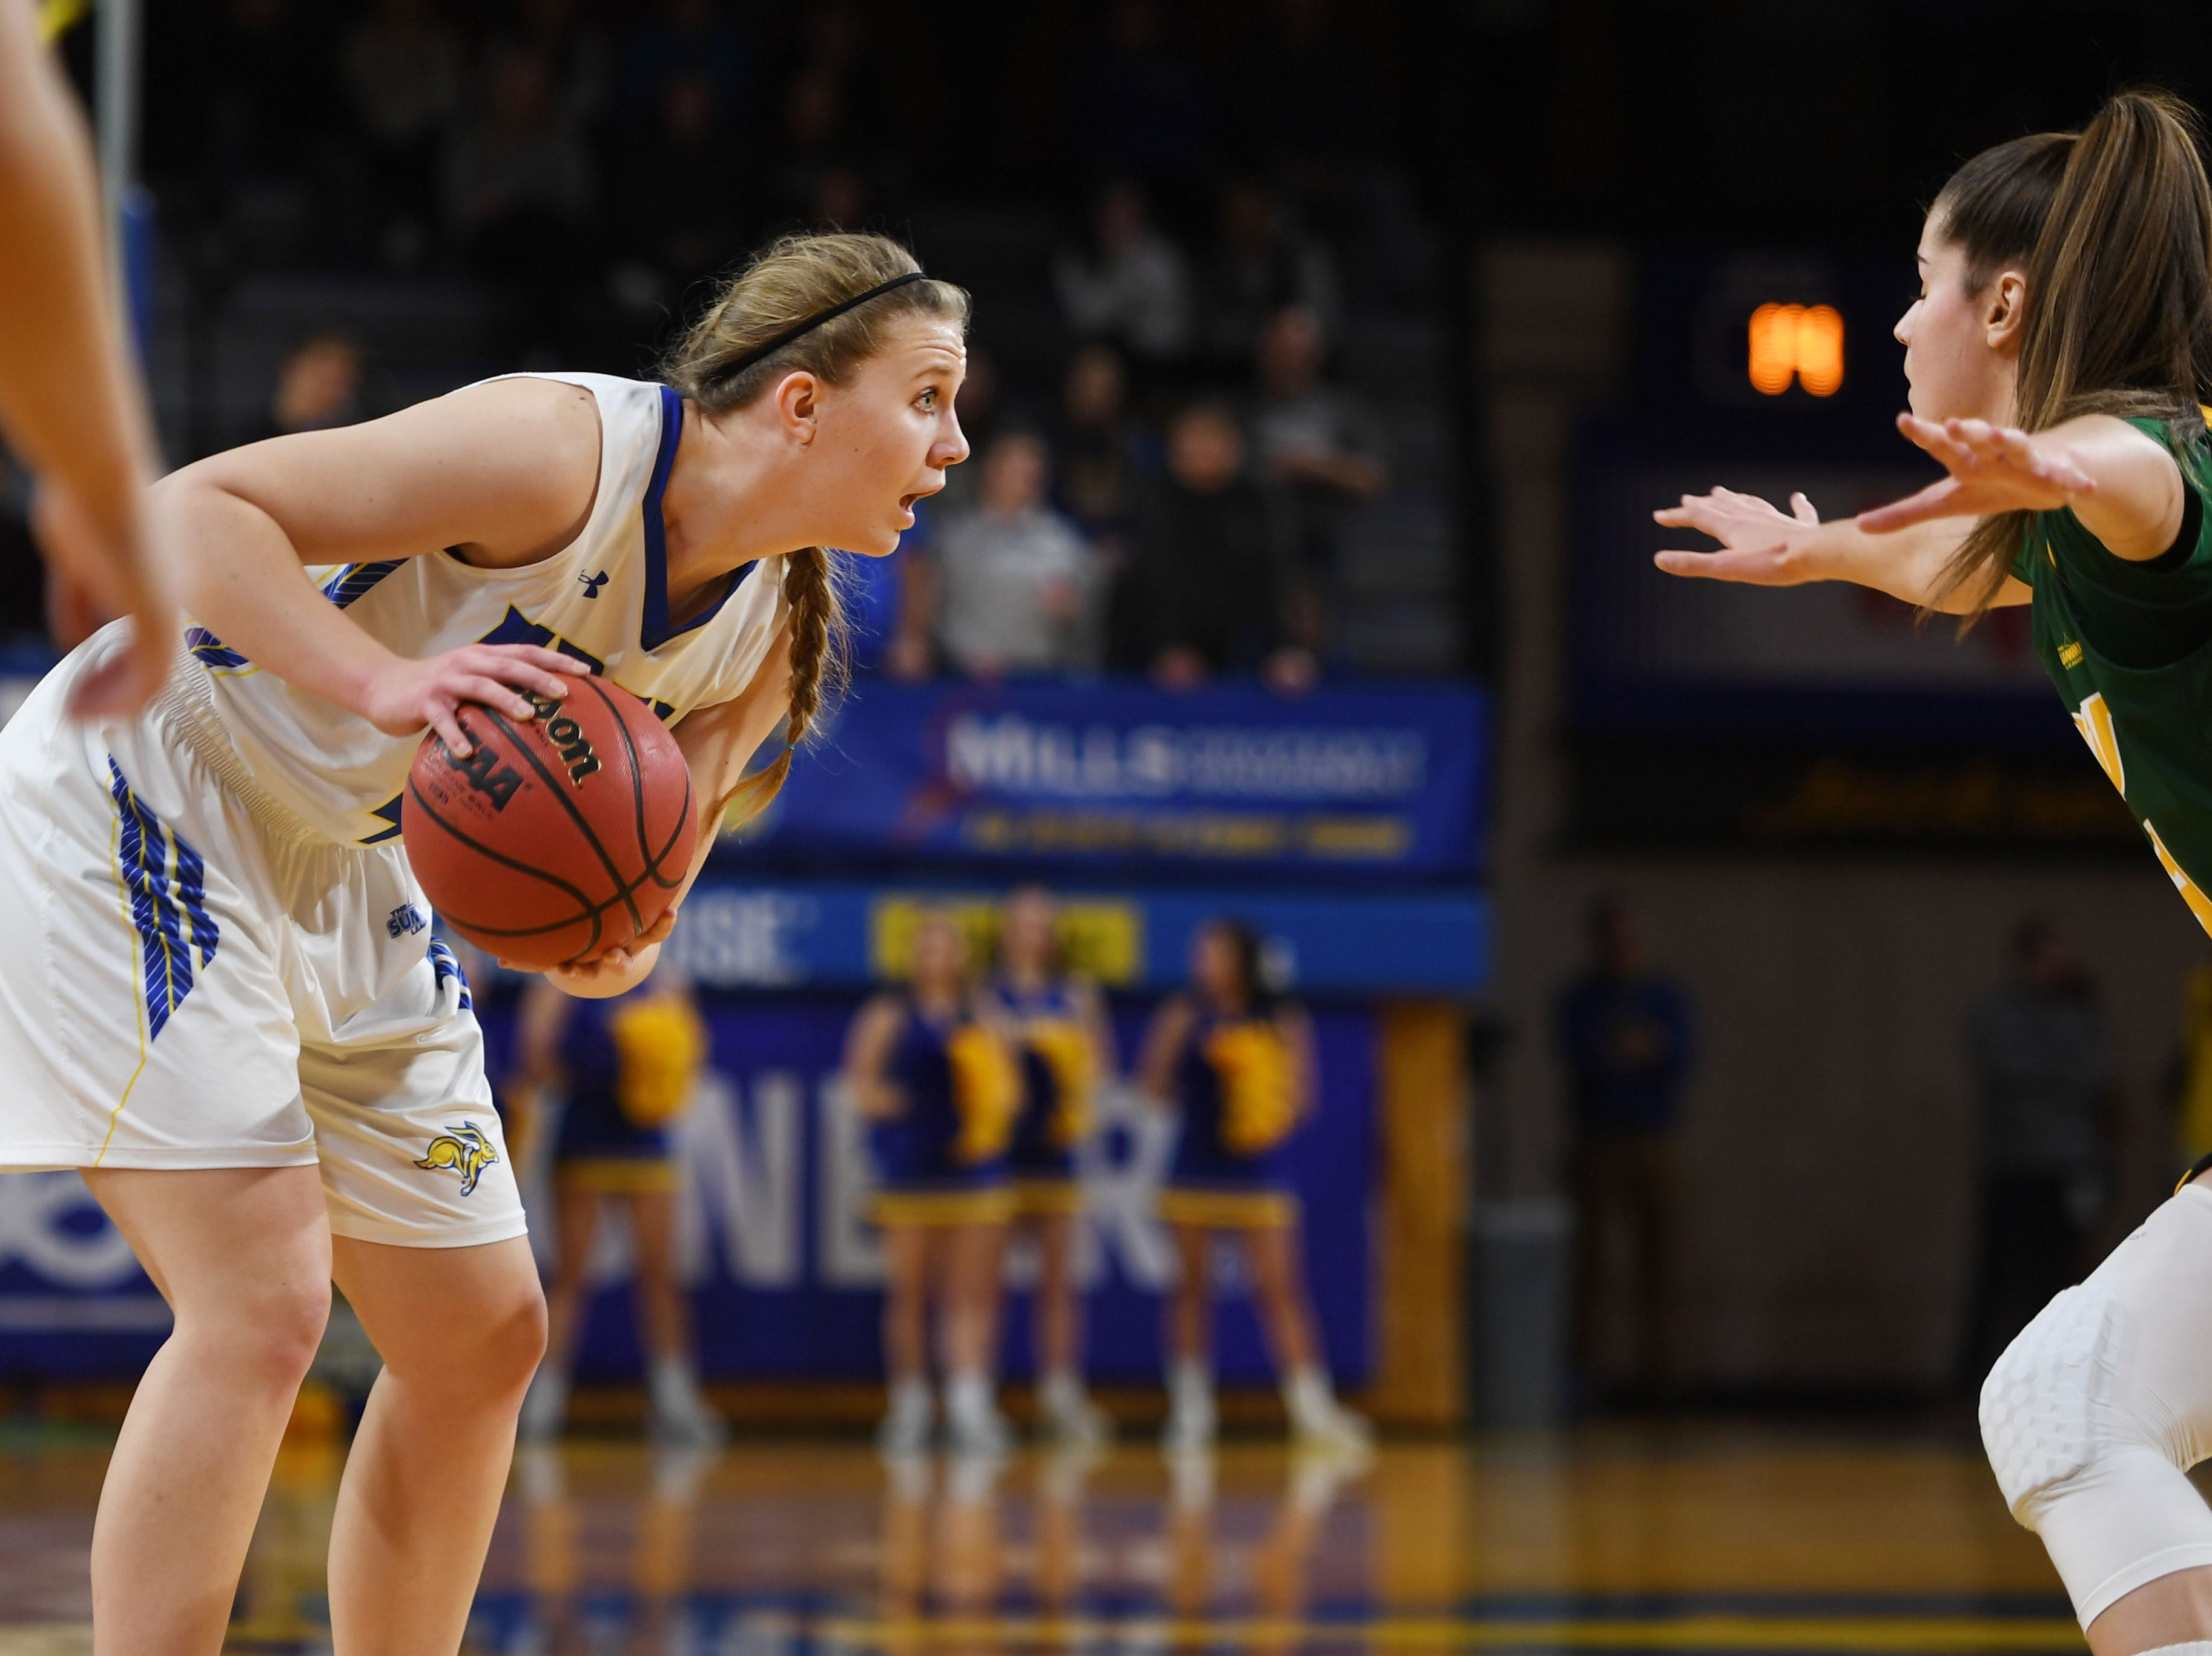 SDSU's Myah Selland goes against NDSU defense during the game Wednesday, Jan. 23, at Frost Arena in Brookings.